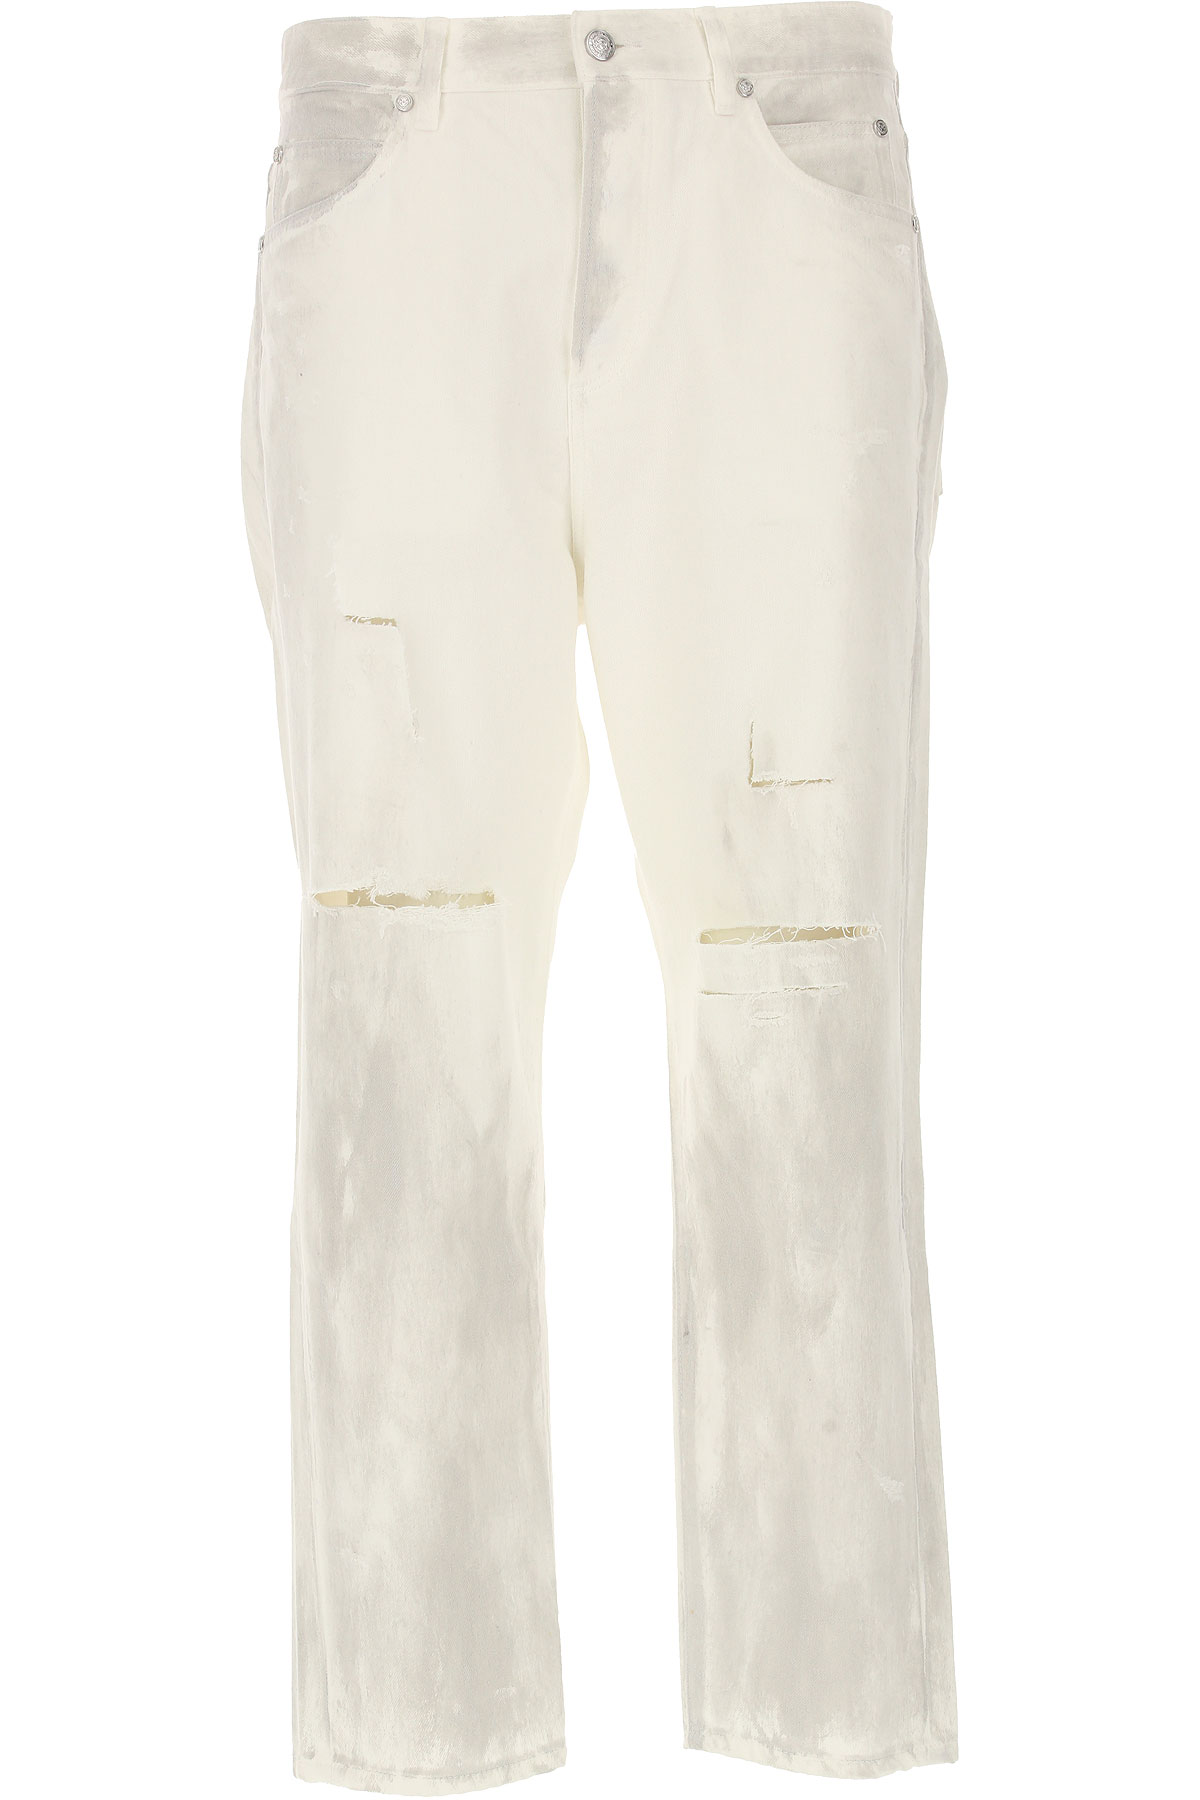 Balmain Jeans, White, Cotton, 2017, 29 30 31 32 33 34